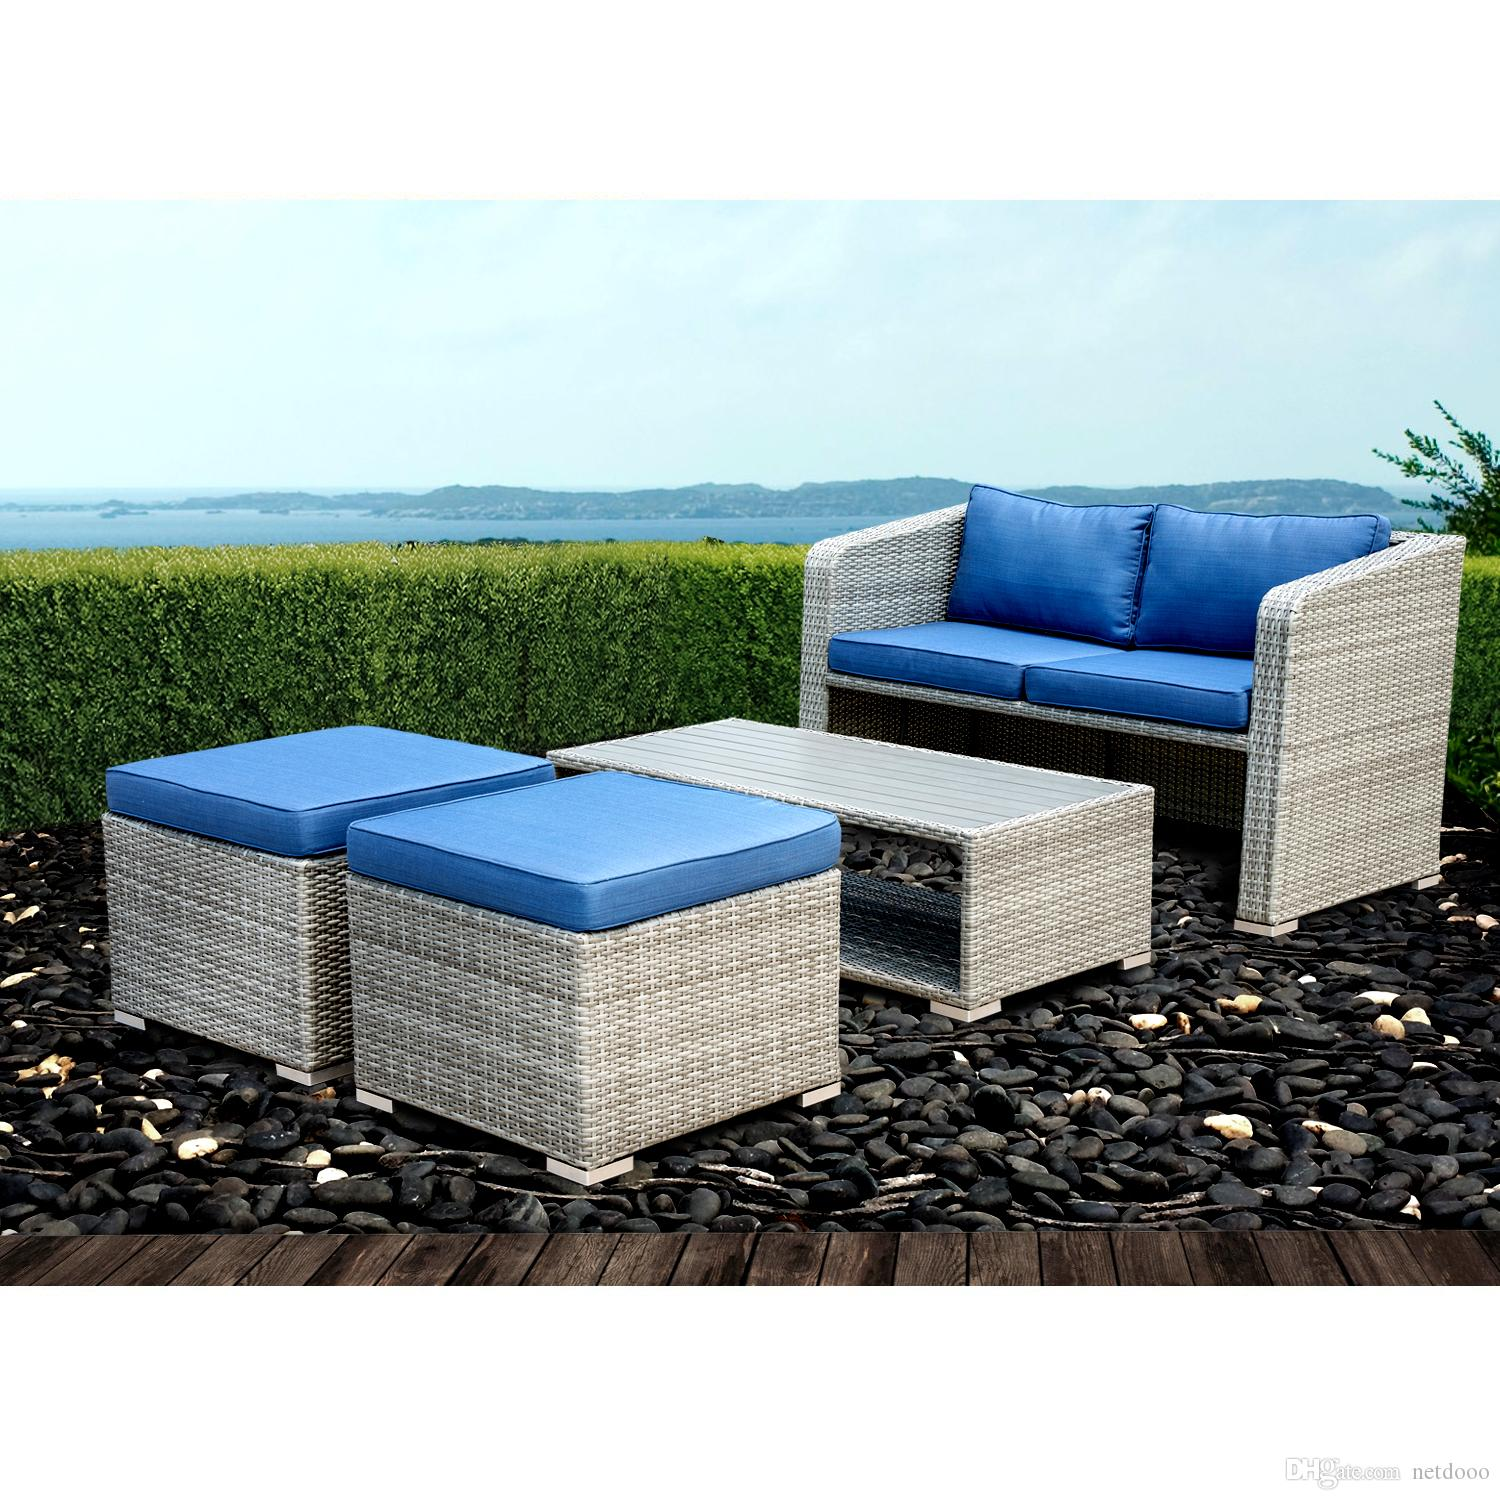 outdoor lloyd view coburg malibu belleville grand cornwall canvas grande northcape patio natural sectional side kingston traverse furniture flanders wicker